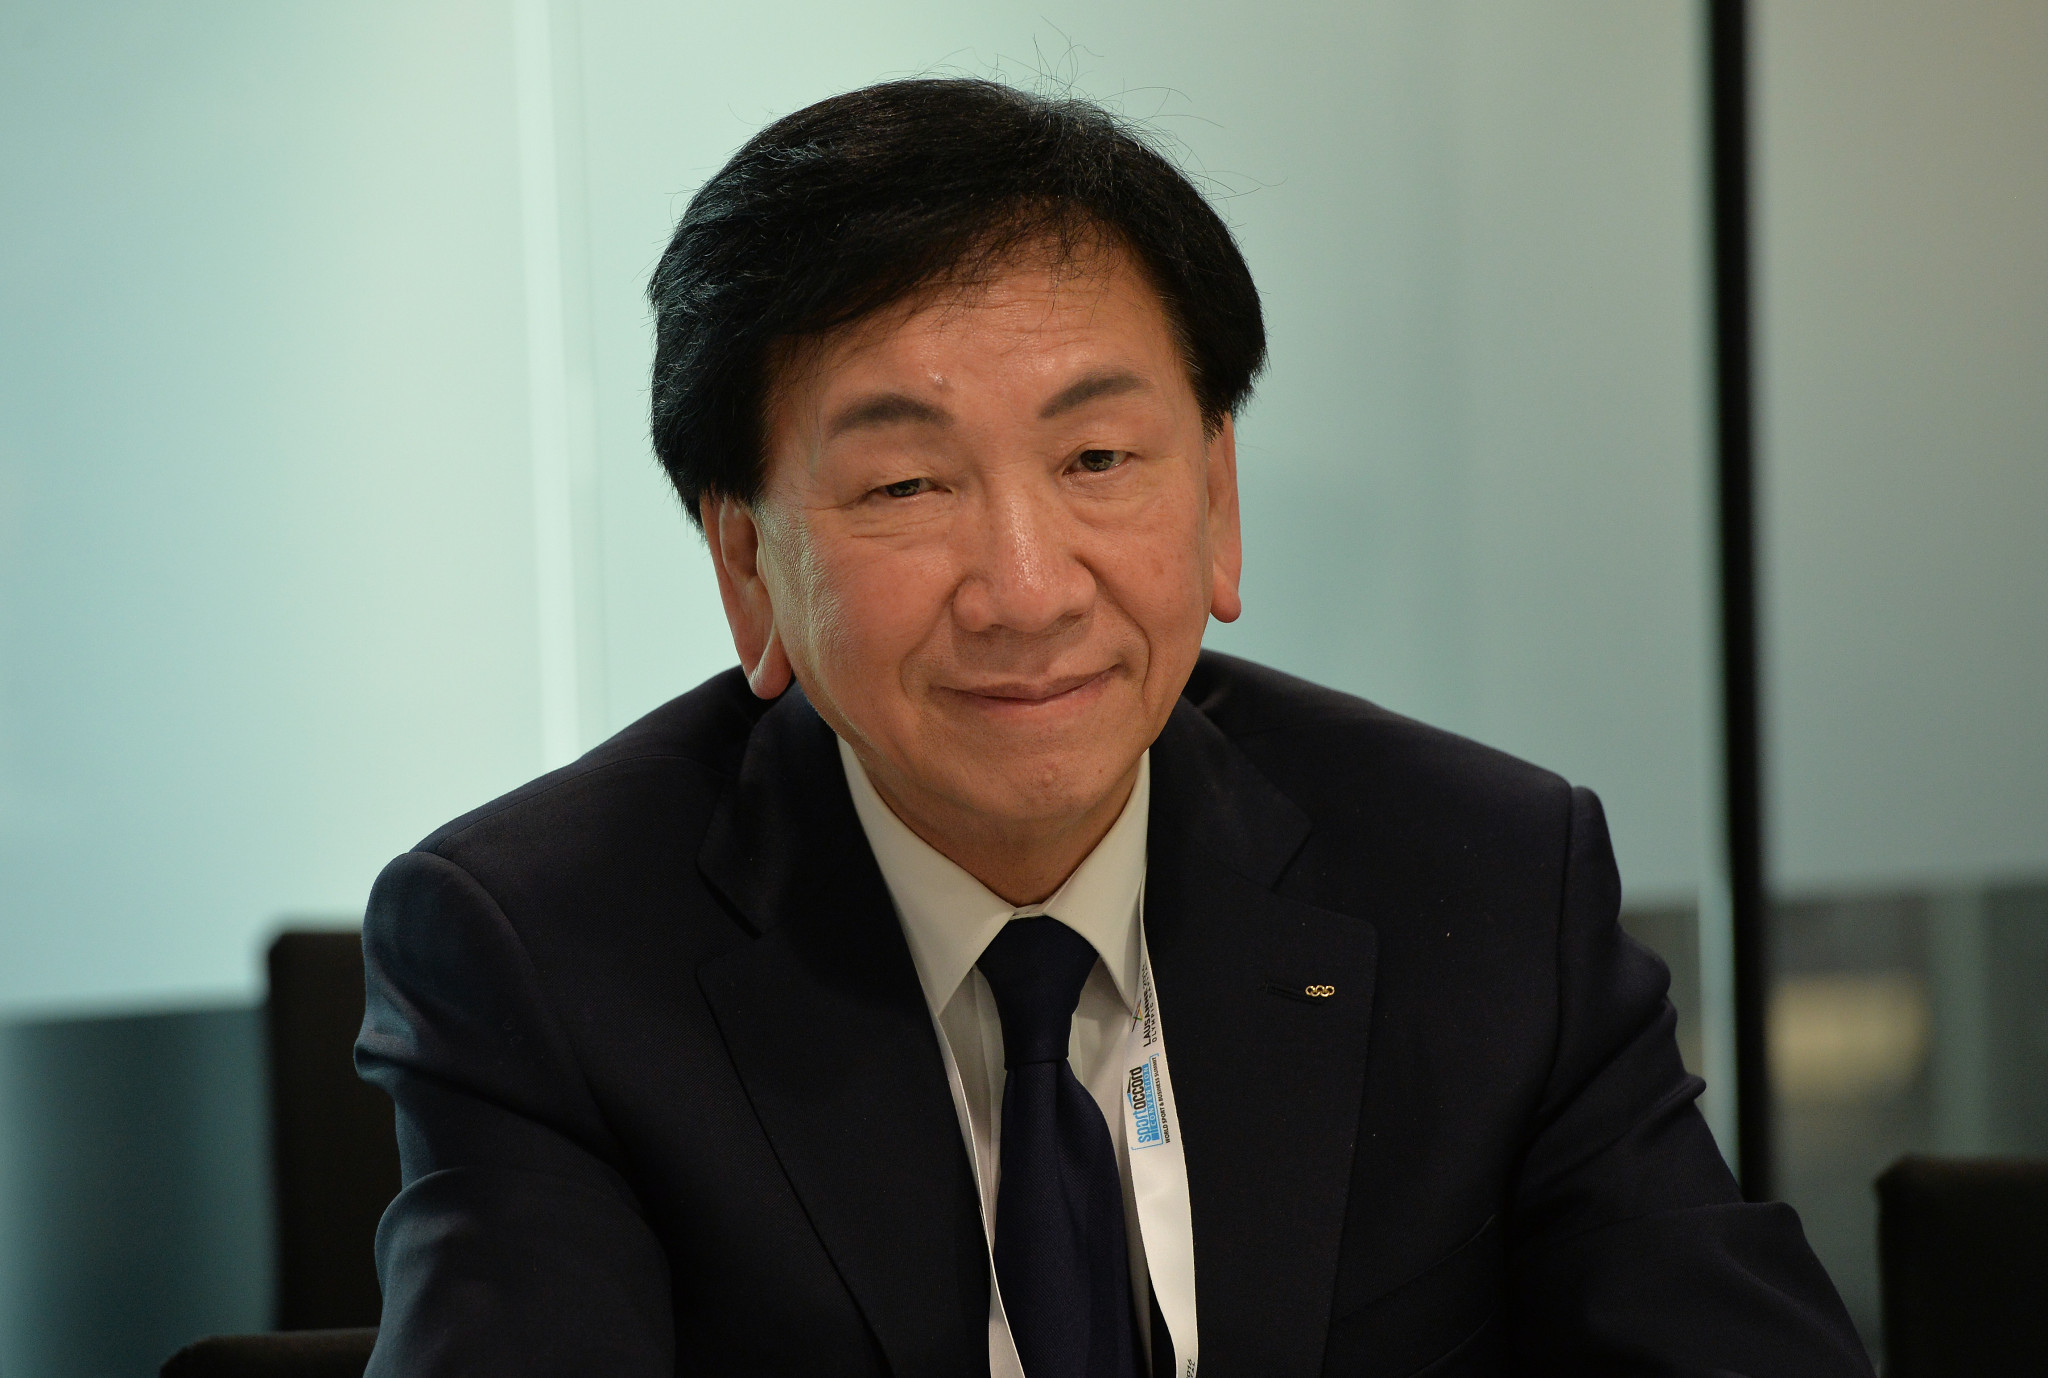 AIBA has faced a tough period since the exit of C K Wu as President ©Getty Images